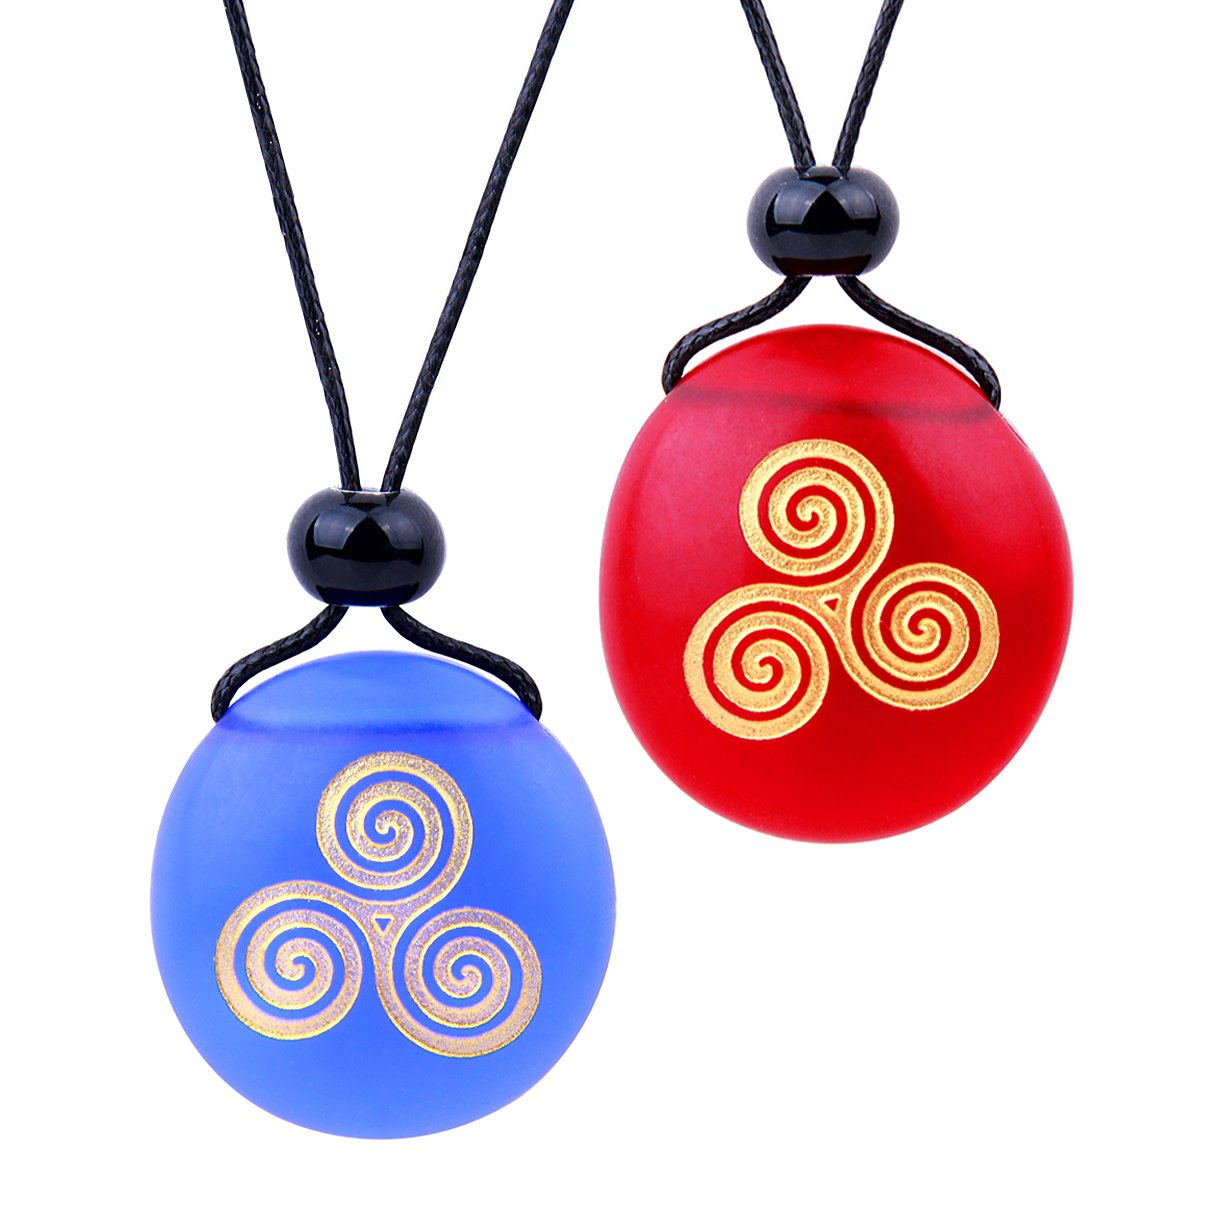 Frosted Sea Glass Stones Spirit of Life Goddess Knot Love Couples BFF Amulets Royal Blue Red Necklaces